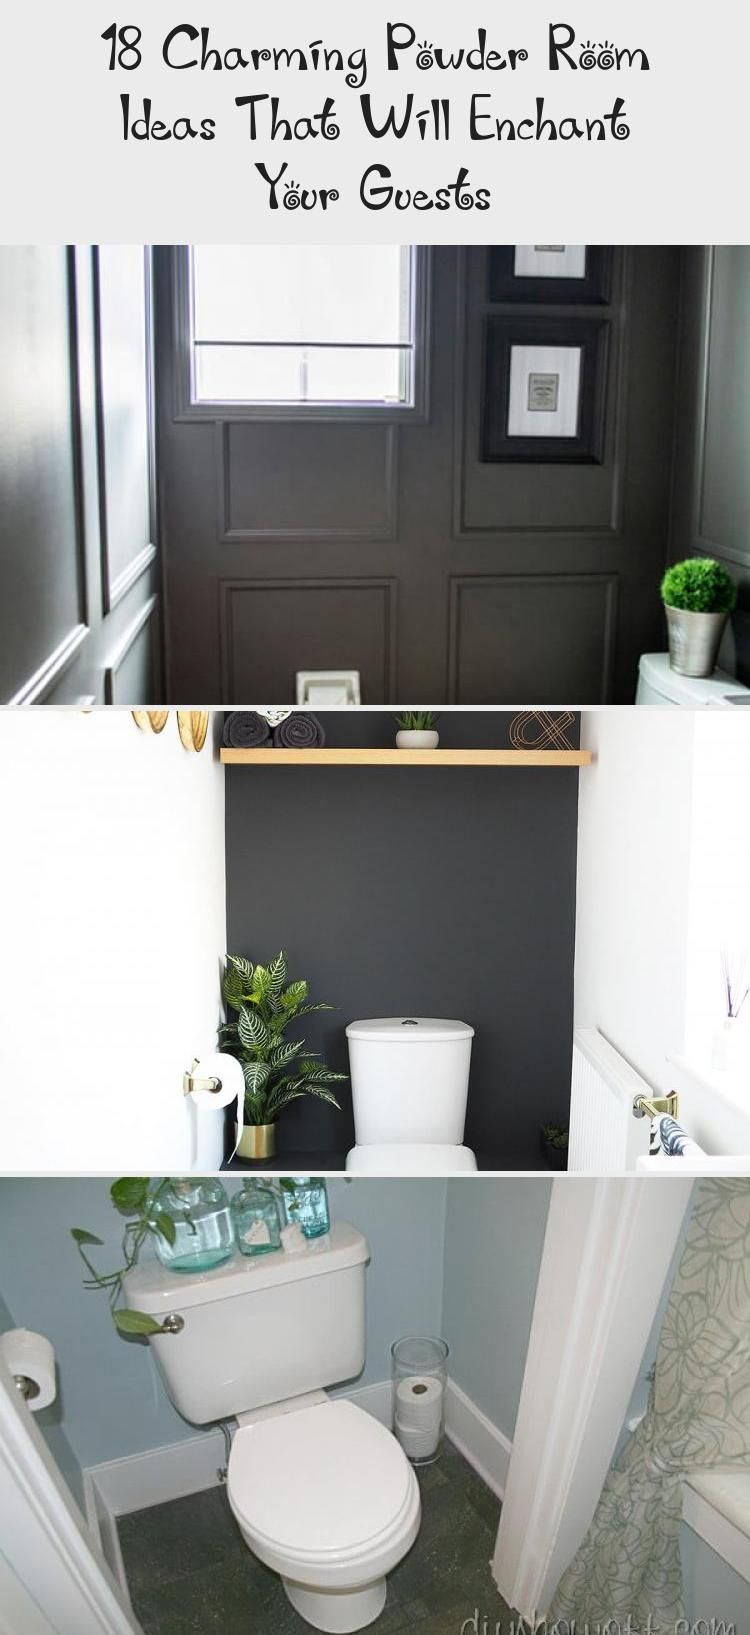 18 Charming Powder Room Ideas That Will Enchant Your Guests - İdeas | Small half bath, Eclectic bathroom design, Eclectic bathroom